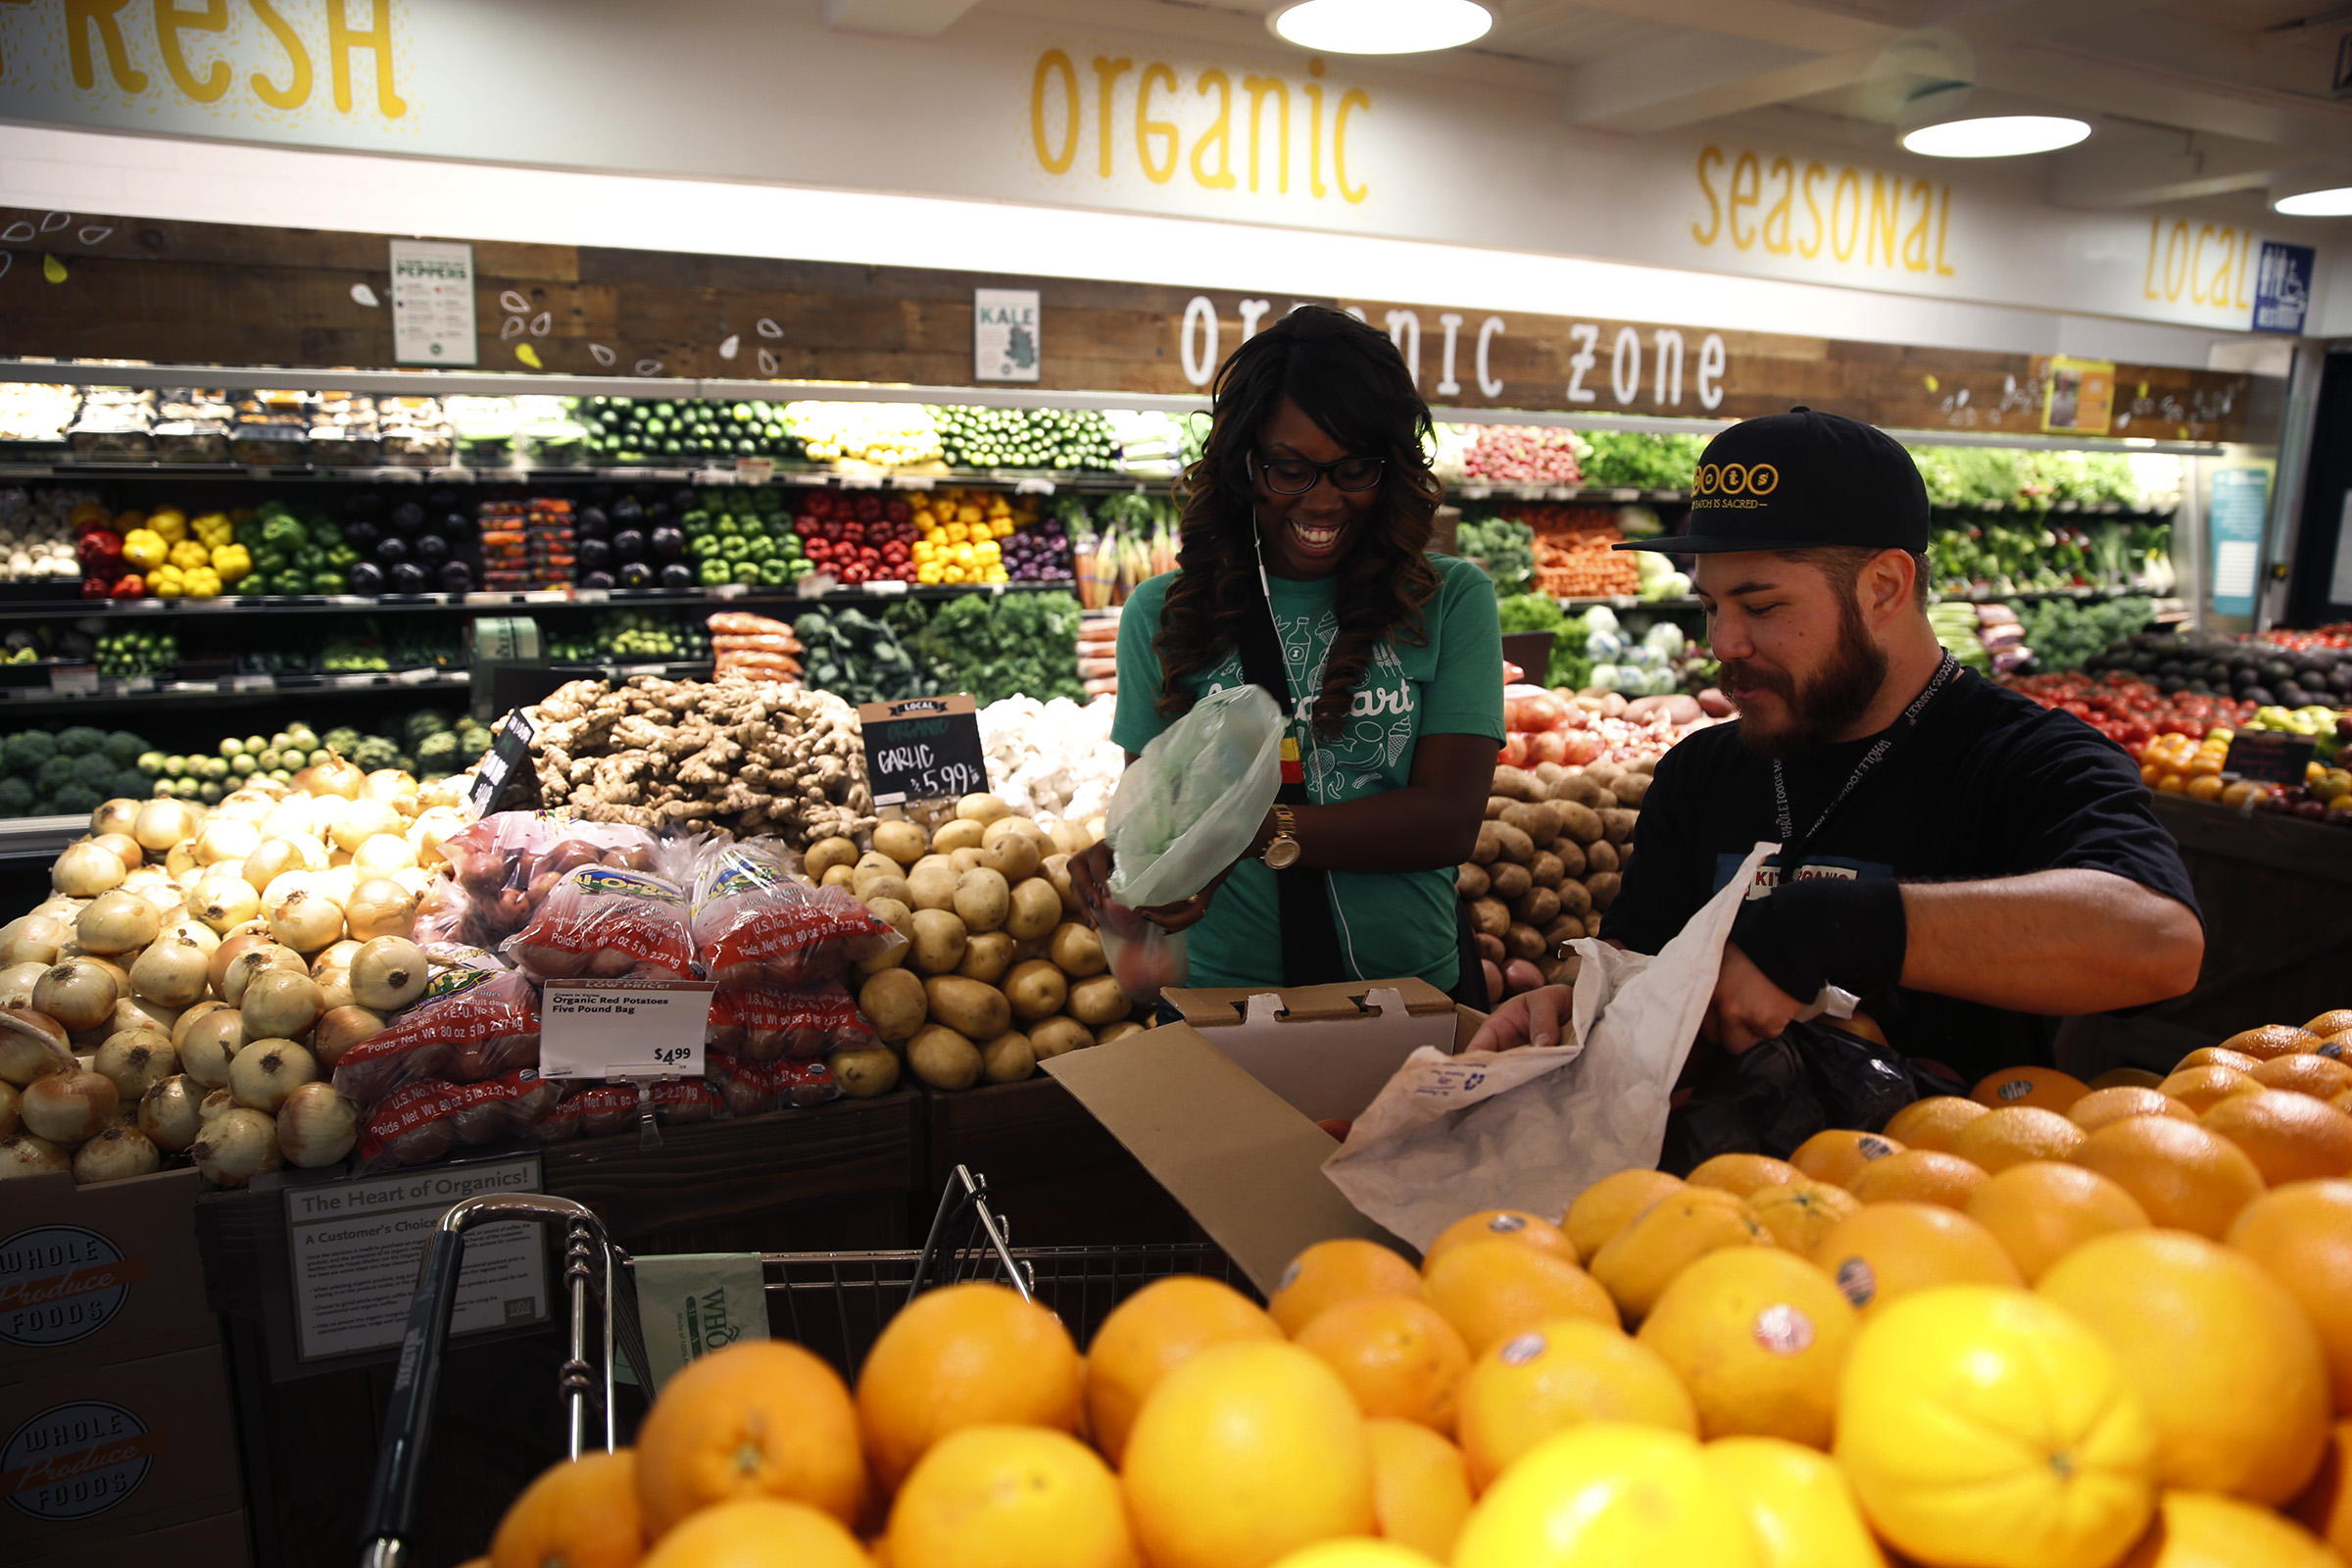 Whole Foods team member Matthew Otsuka opens a box of peaches for Instacart shopper Kara Pete as she shops for Concologist Tricia Carr.